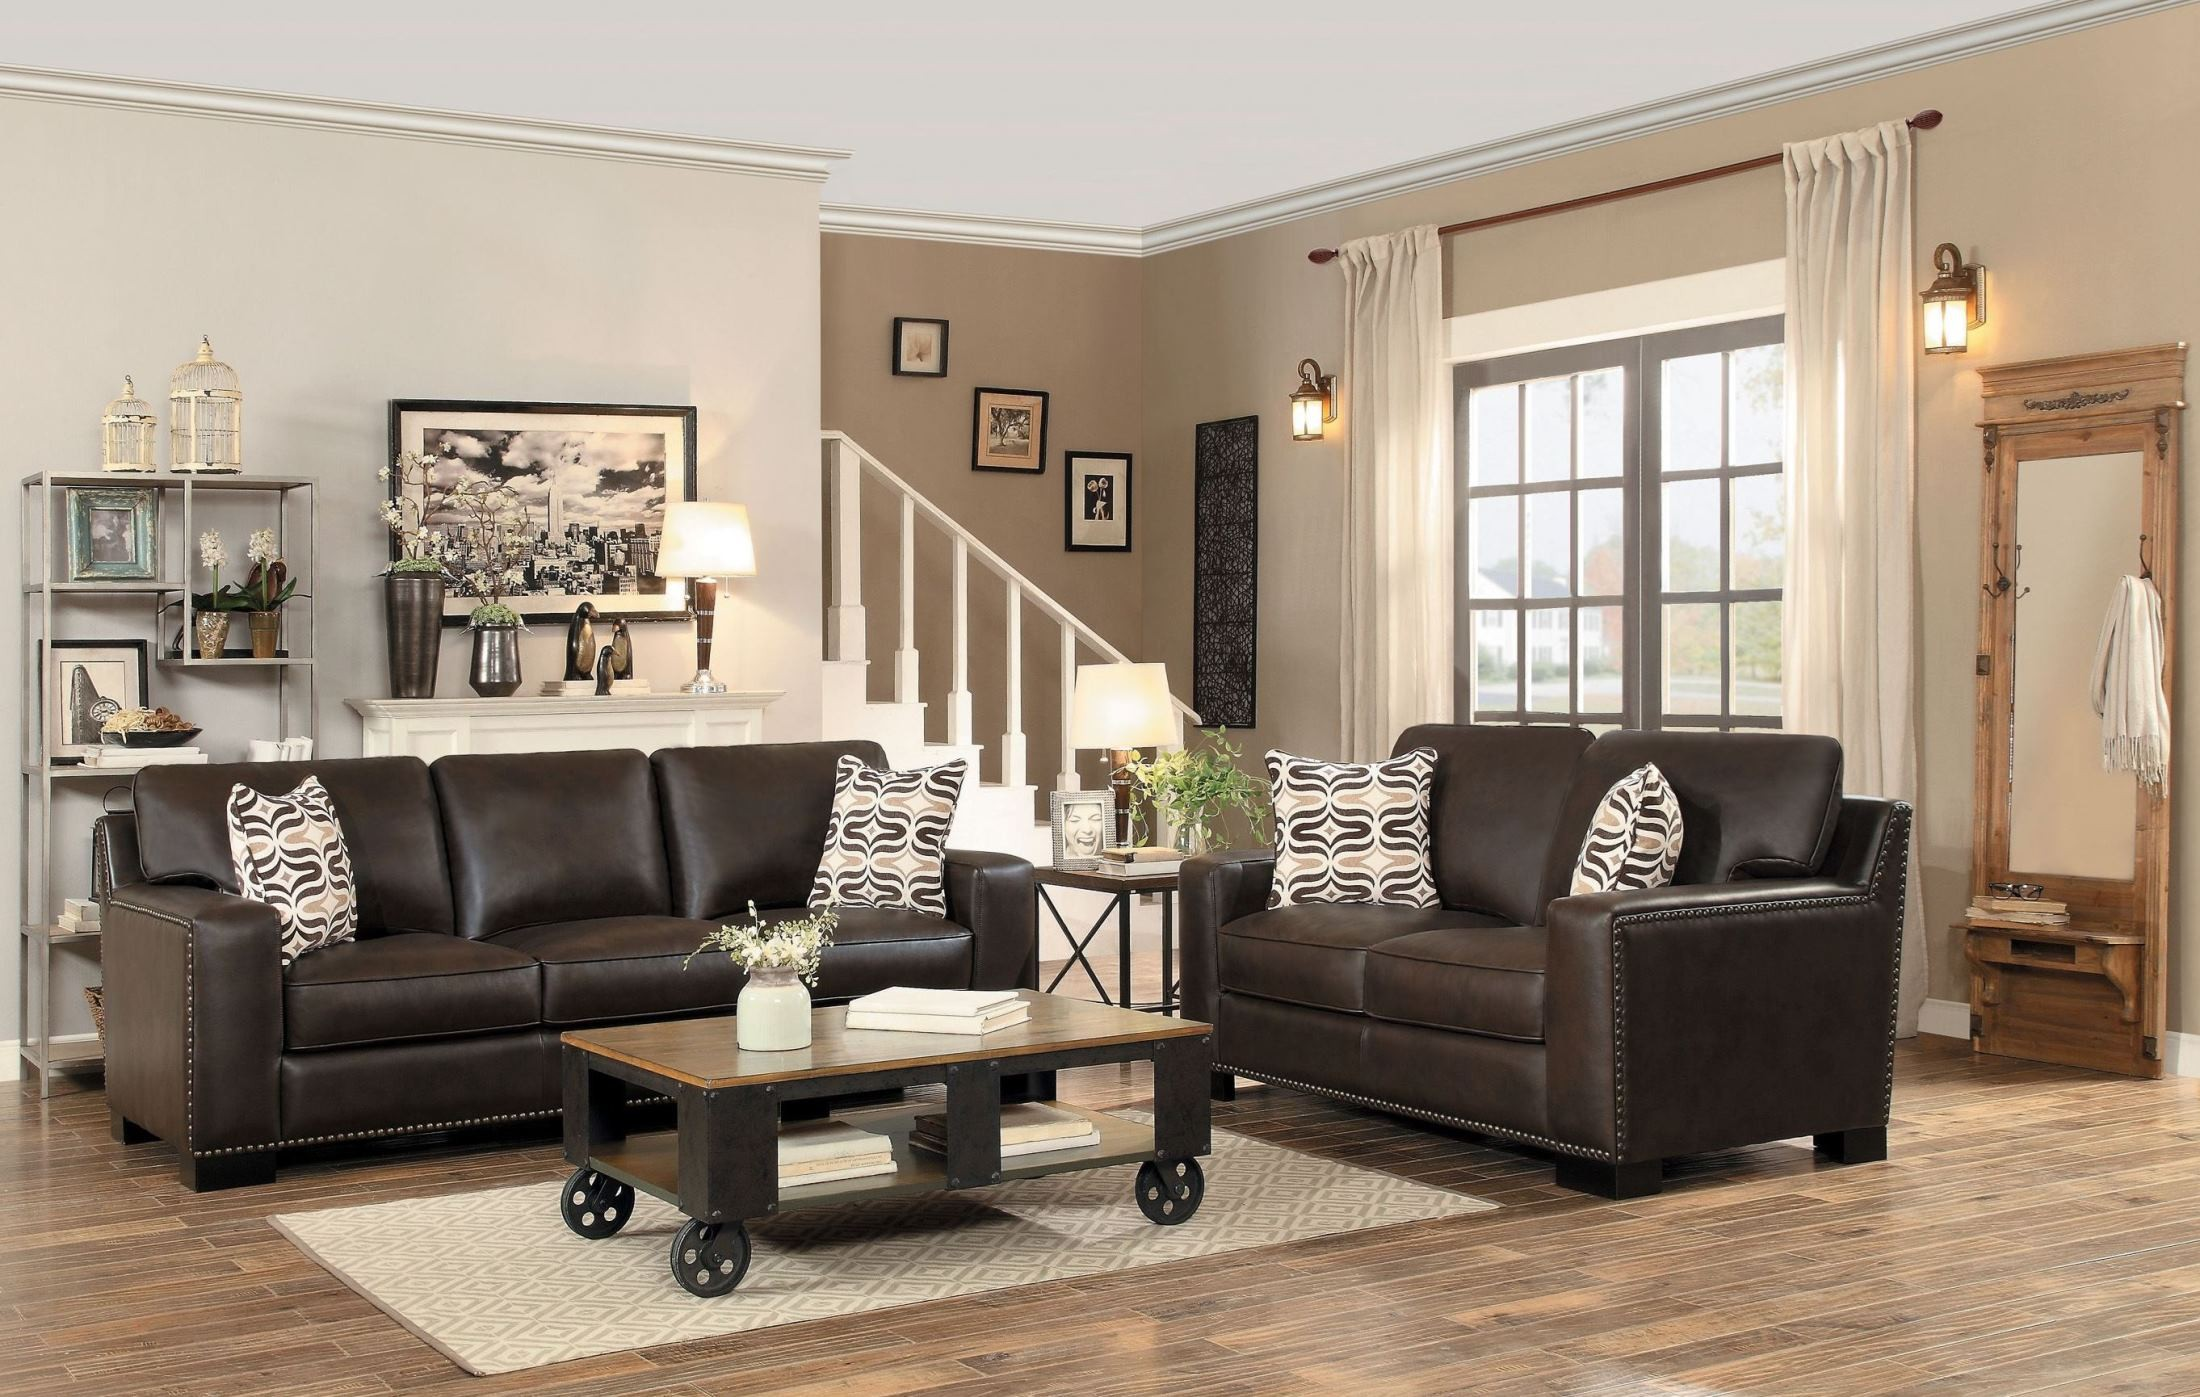 Gowan dark brown living room set from homelegance for Dark brown living room set